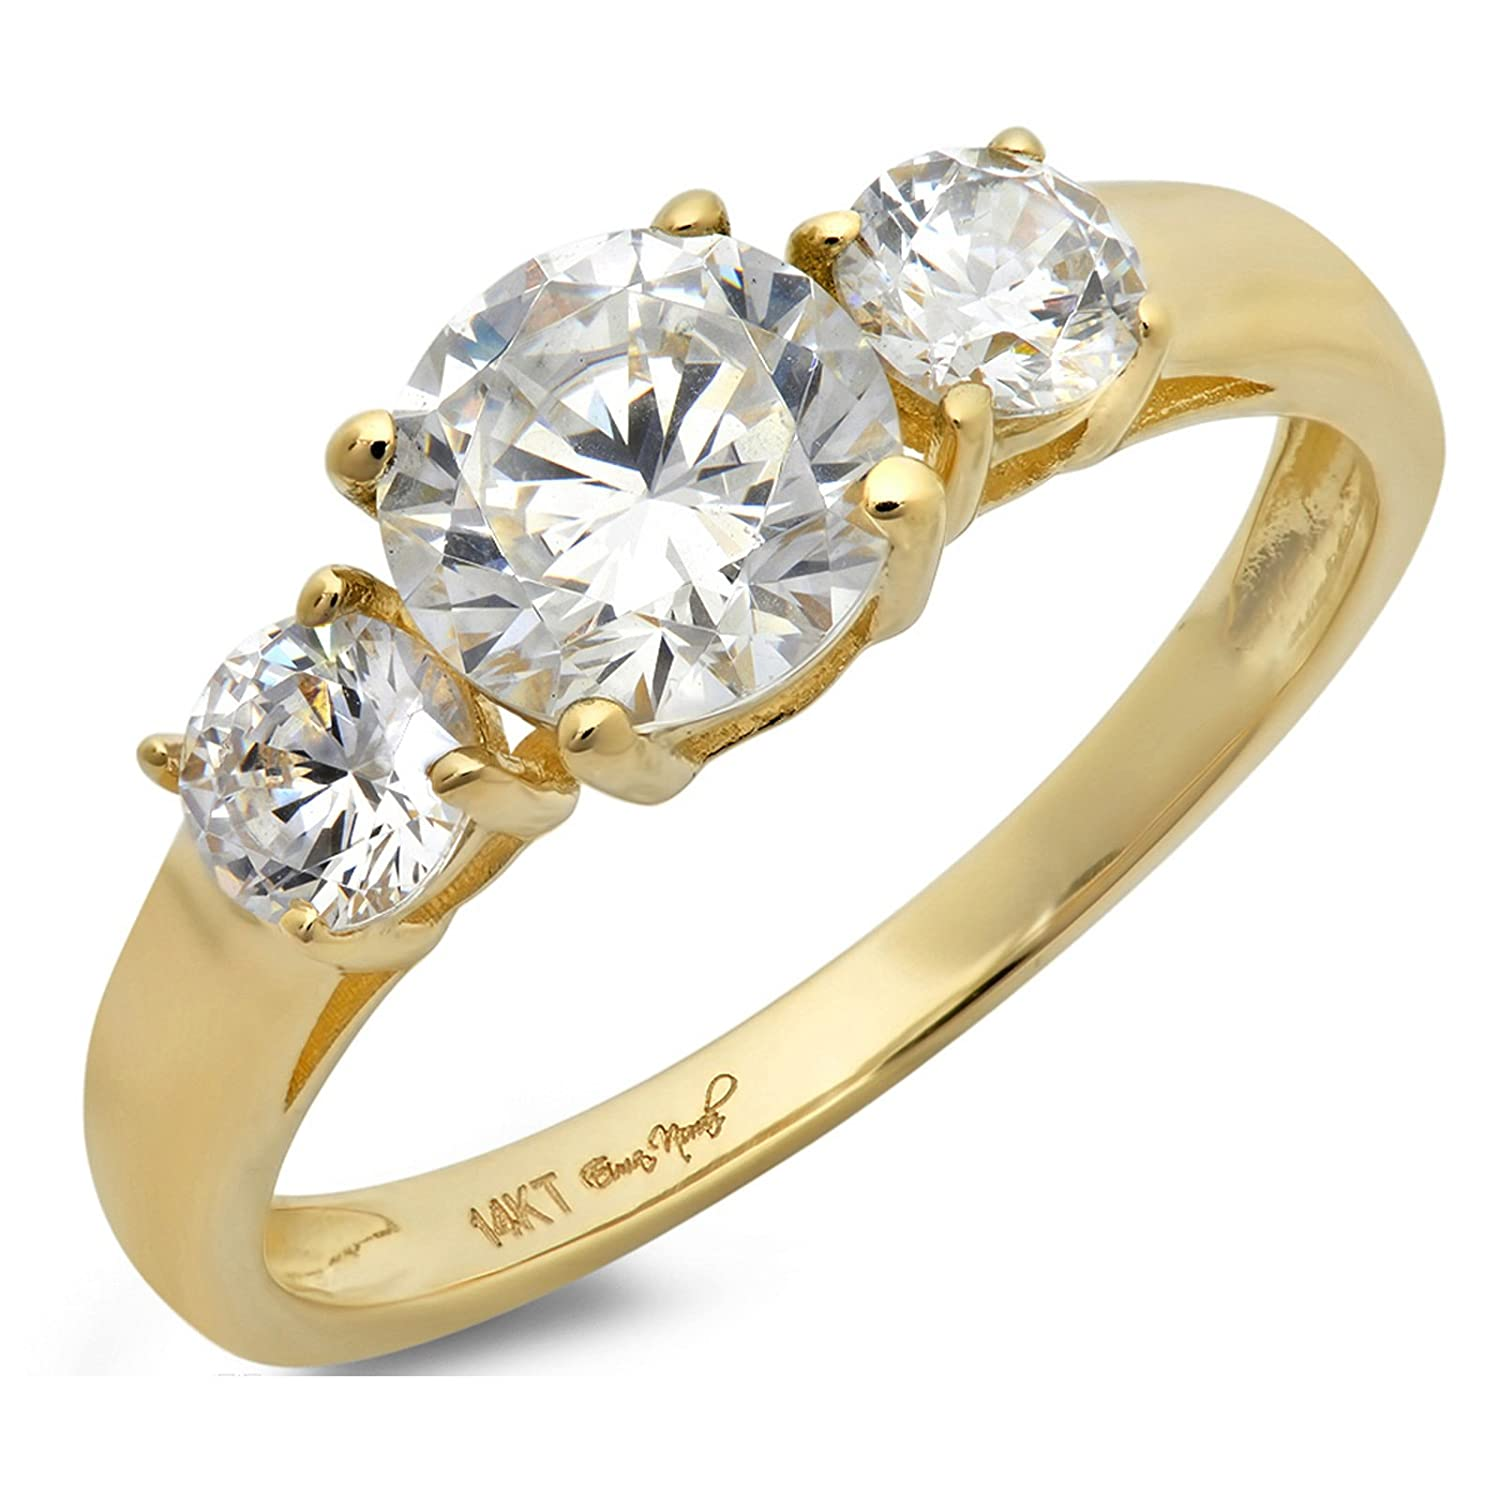 jewellry fit diamond in luxury w her for carat yellow of fort t band gold s bands rings website wedding elegant